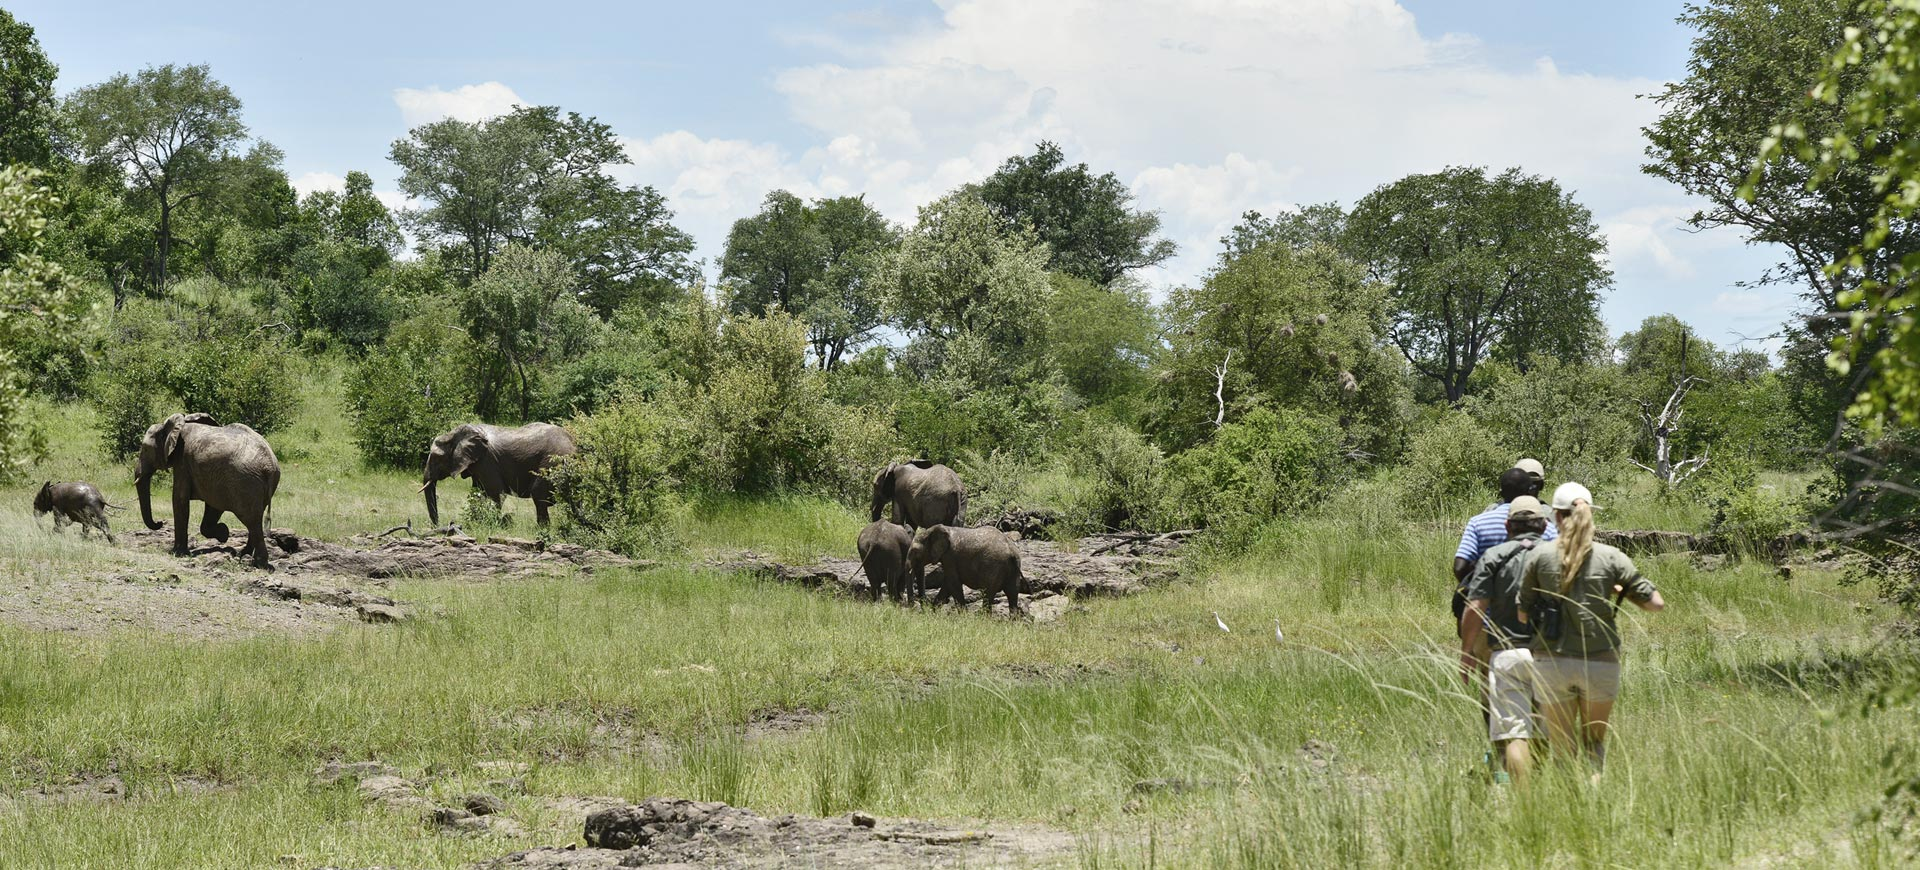 Zambezi National Park Conservation Safari